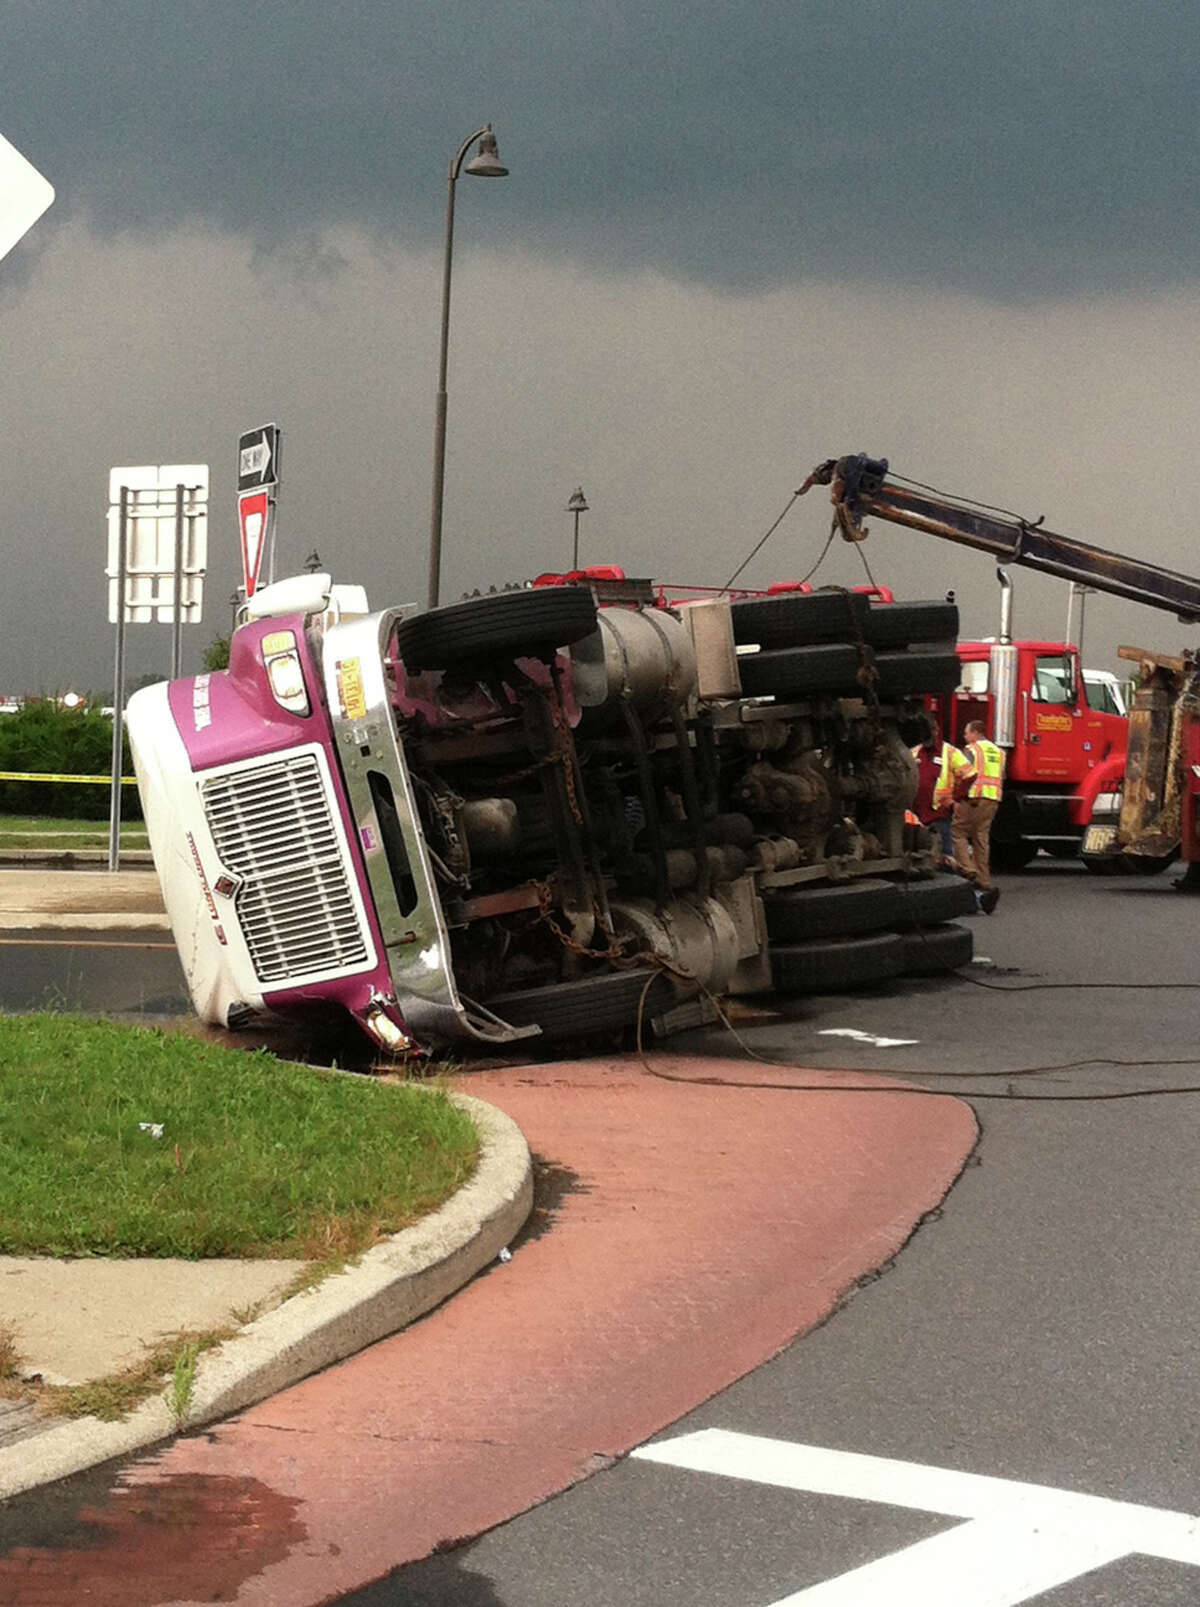 A truck carrying fuel rolled over on Route 9 Thursday afternoon, forcing authorities to close the road , order the evacuation of nearby homes and businesses and declare a state of emergency for a two-mile radius. (Scott Waldman / Times Union)